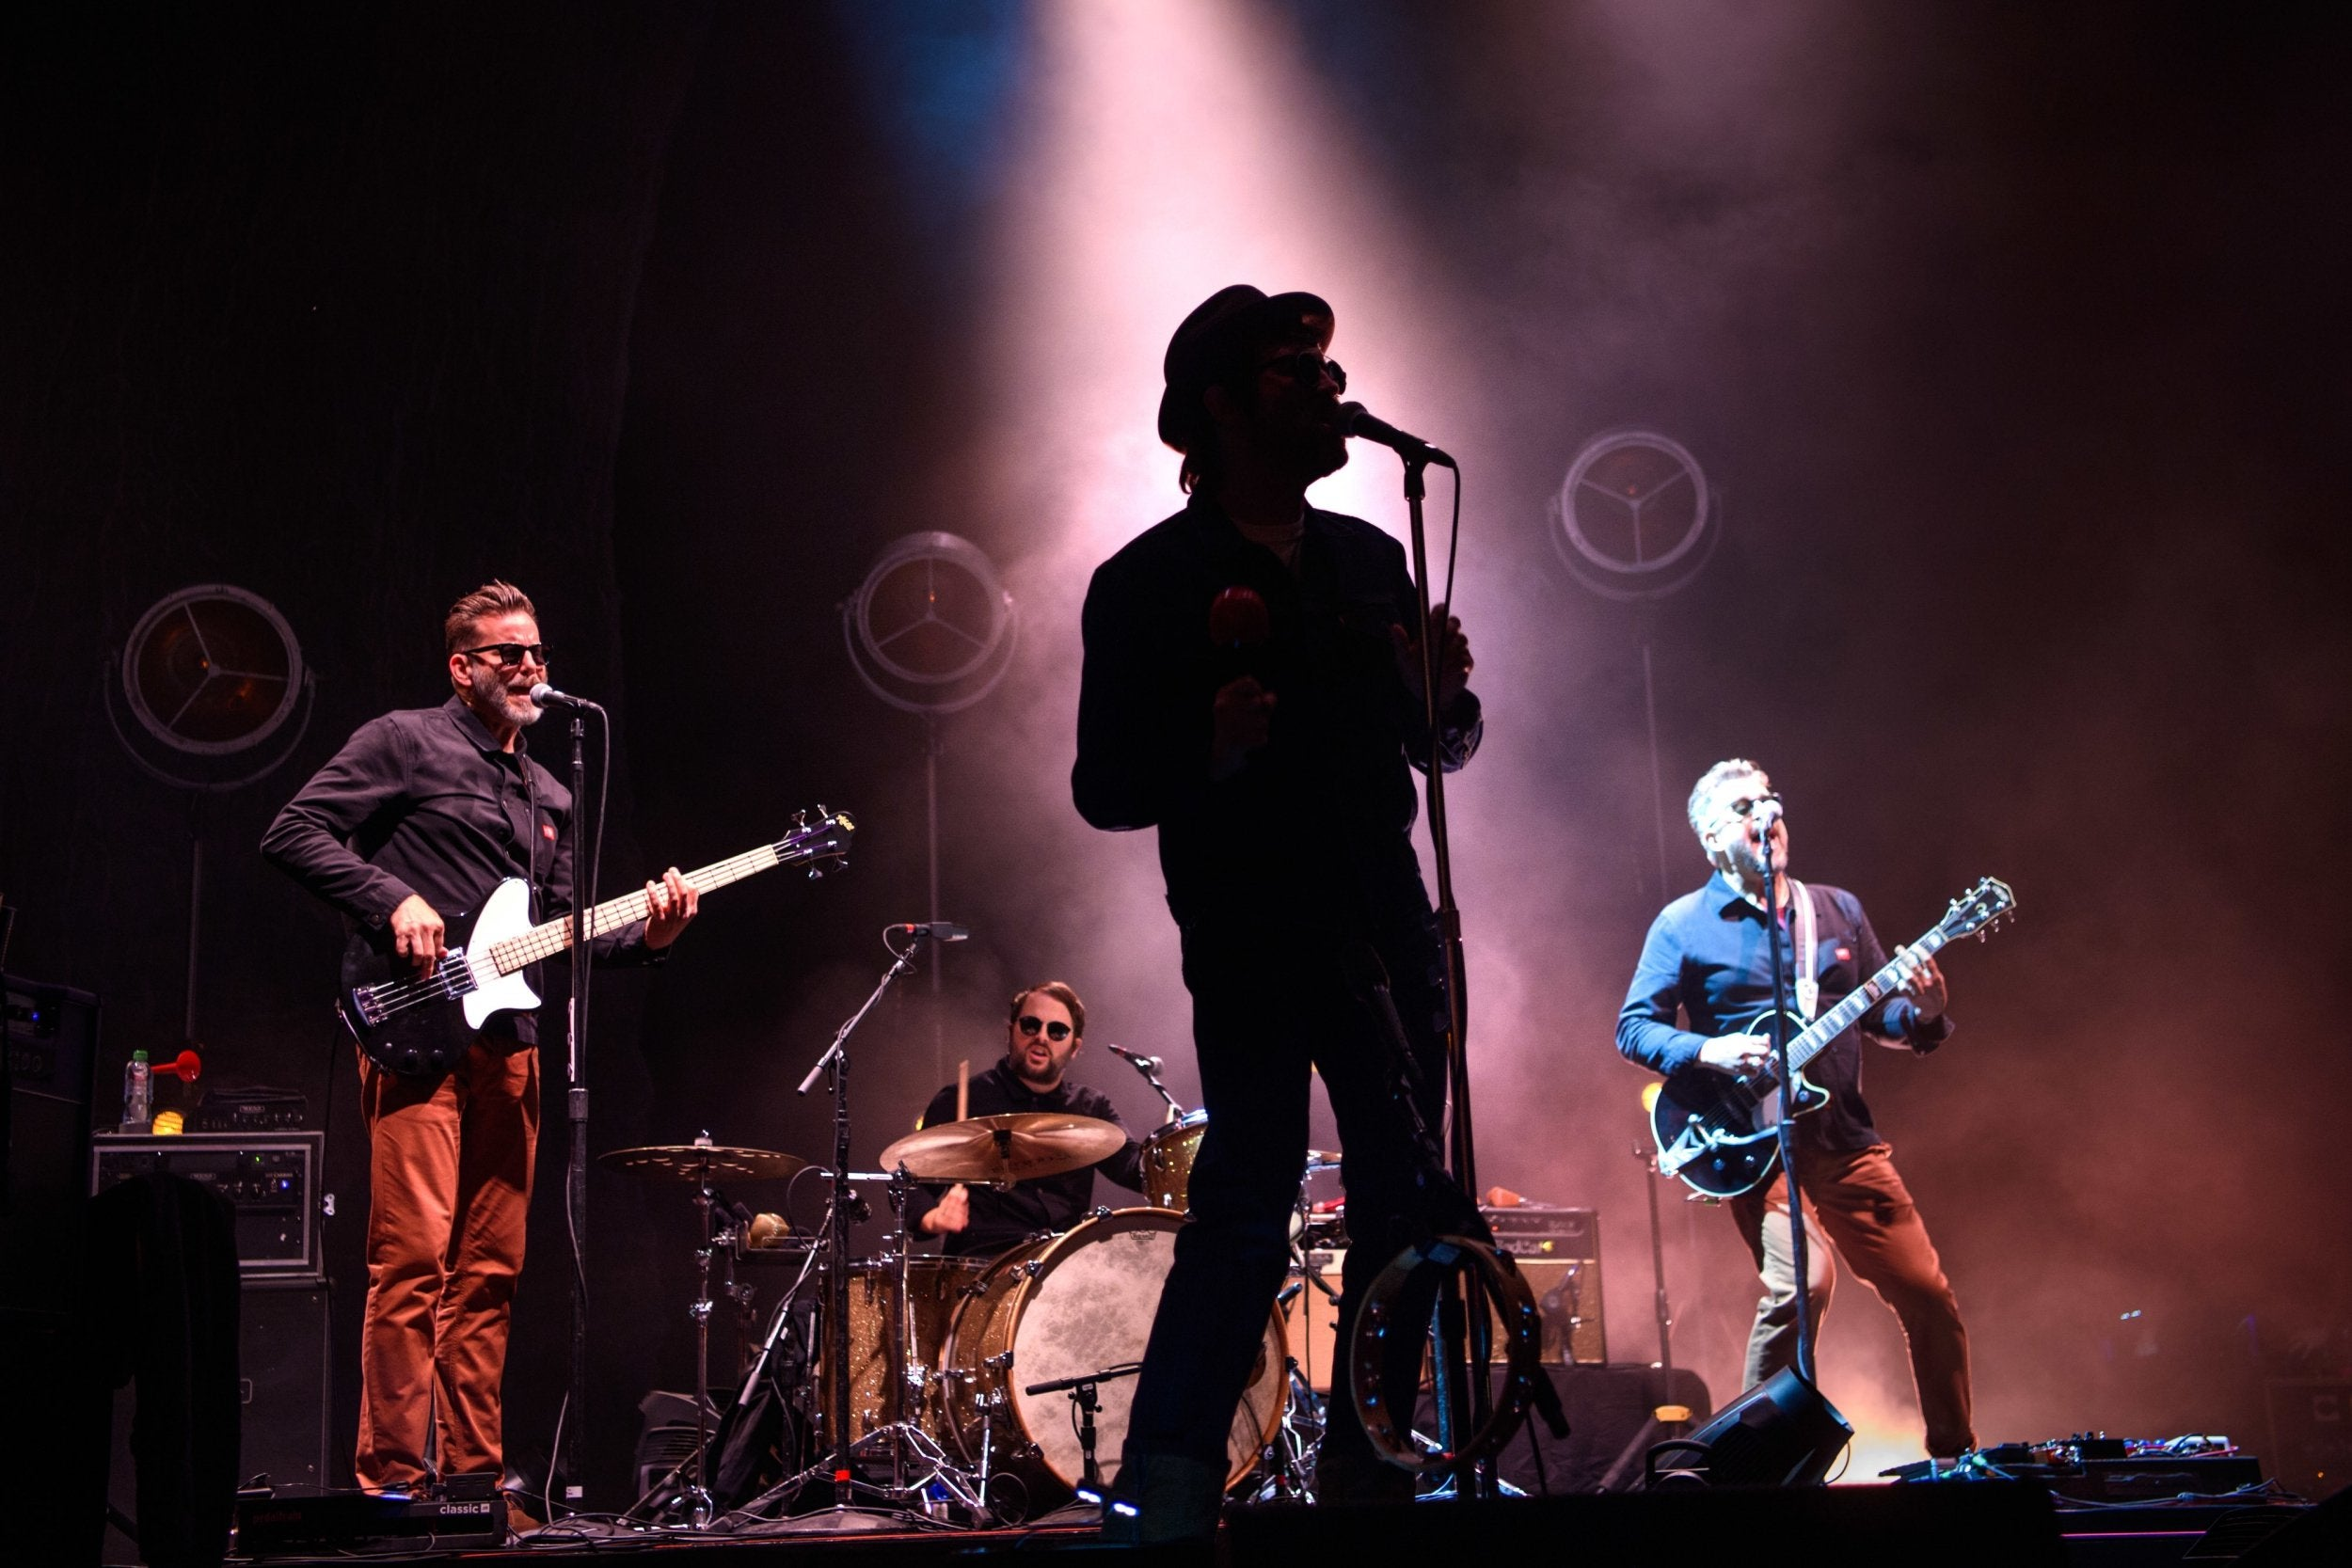 Eels Manchester Academy Live Review How E Overcame The England Game The Independent The Independent